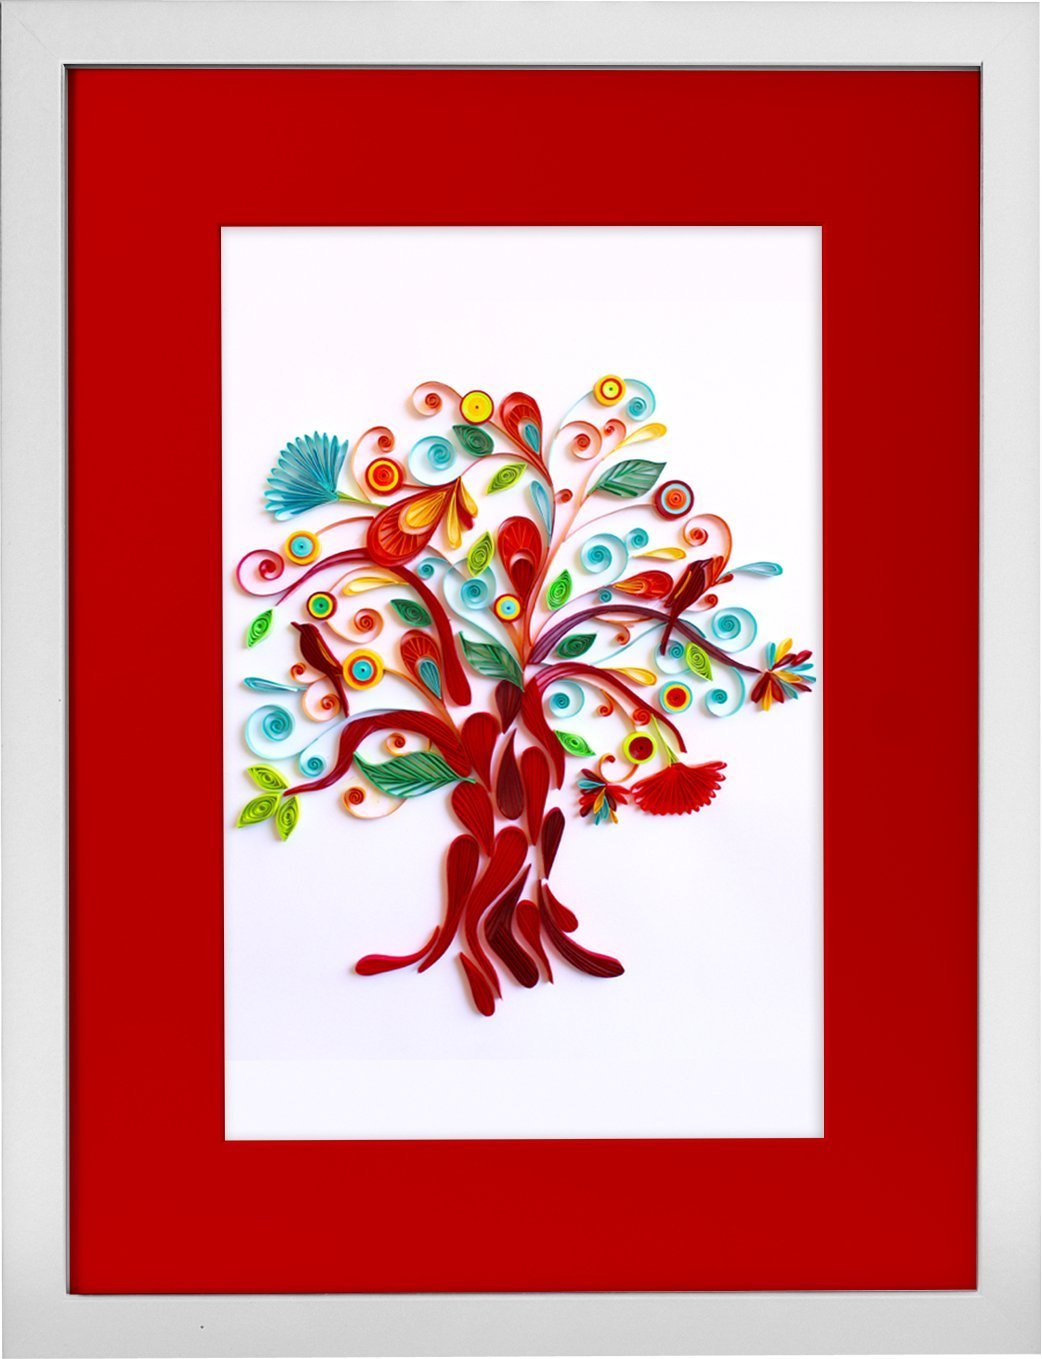 Tree of Life - Modern Paper Quilled Wall Art for Home Decor (one of a kind paper quilling handcrafted piece made with love by an artist in California)